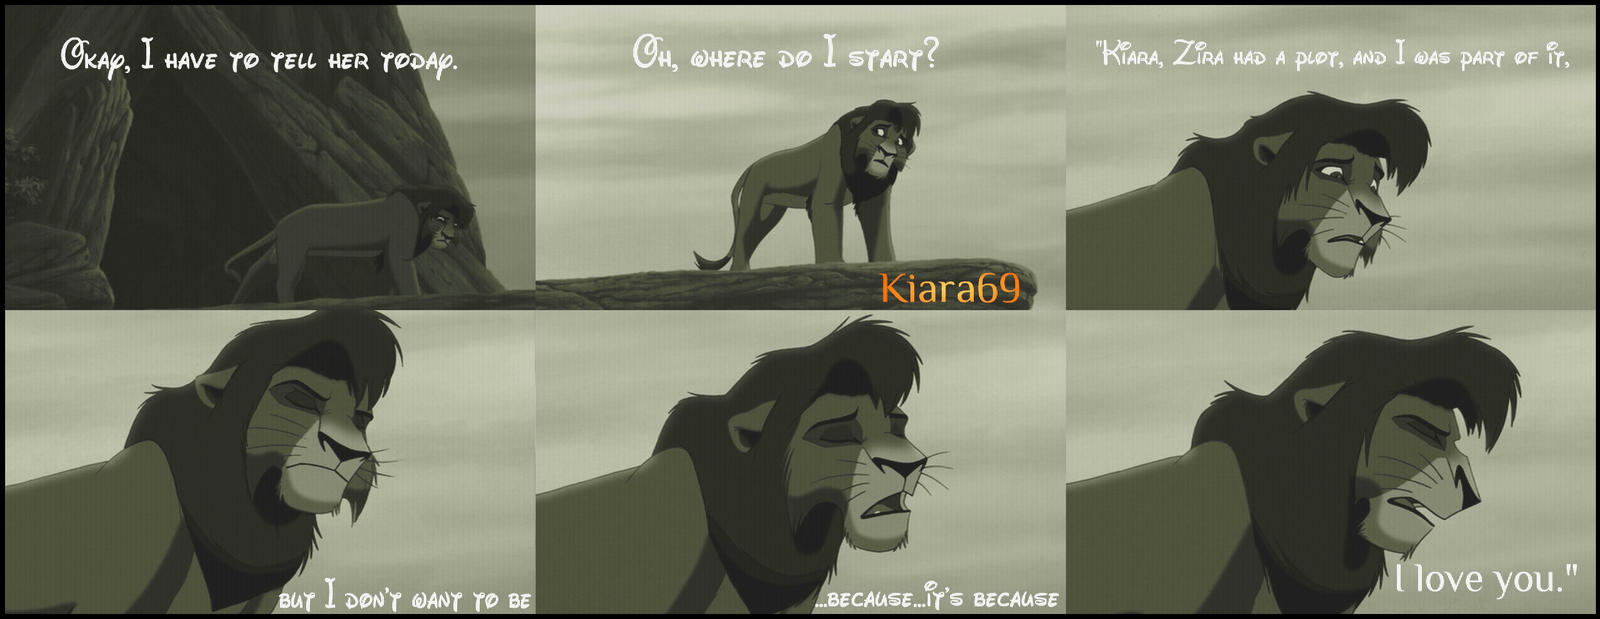 lion king 2 quotes - photo #32